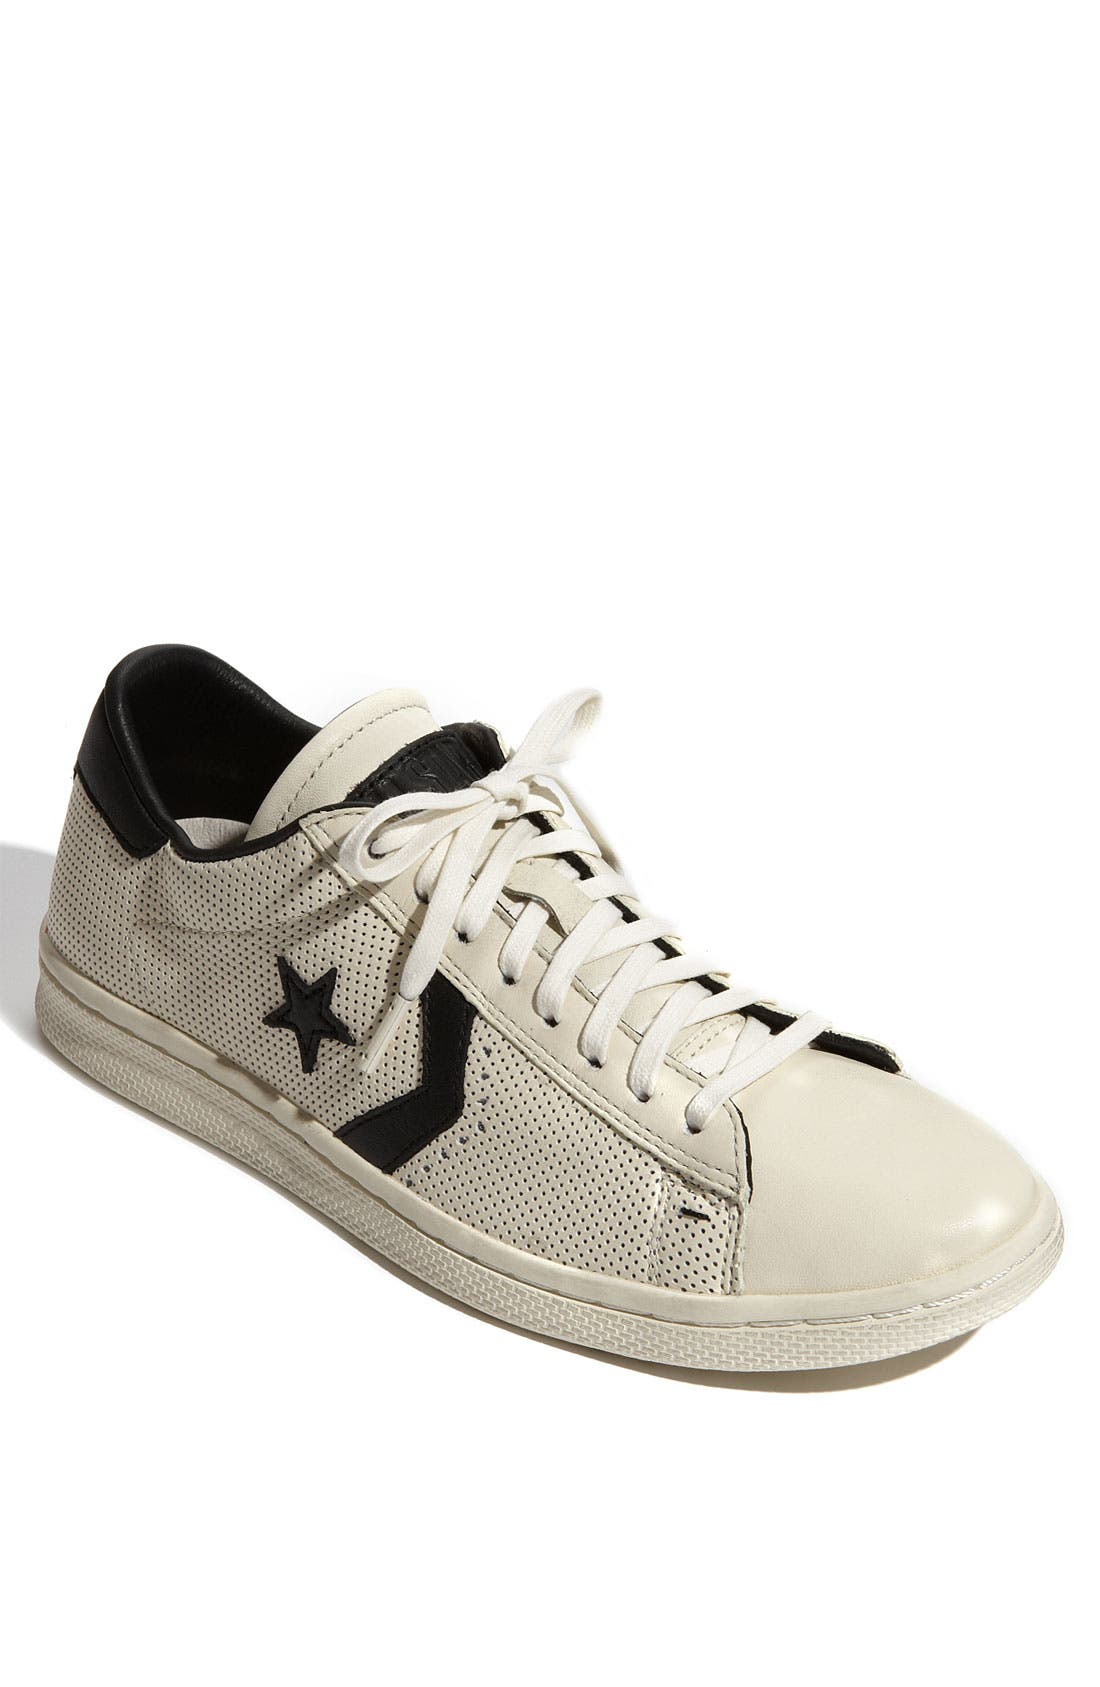 Alternate Image 1 Selected - Converse by John Varvatos 'Star Player' Leather Sneaker